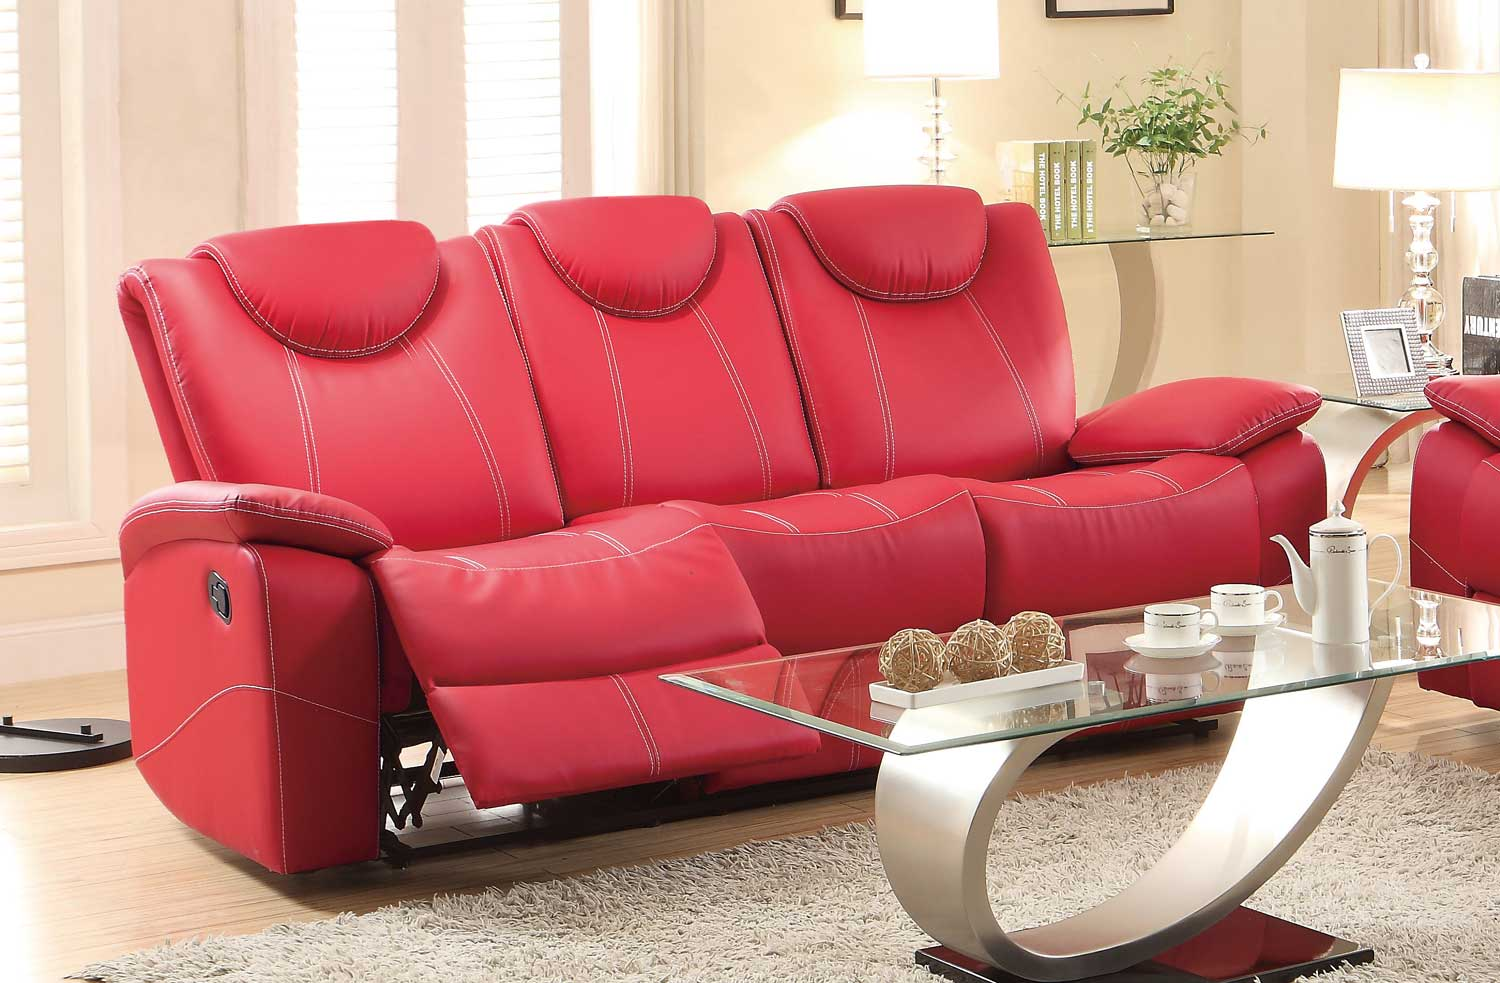 Homelegance Talbot Double Reclining Sofa - Red Bonded Leather